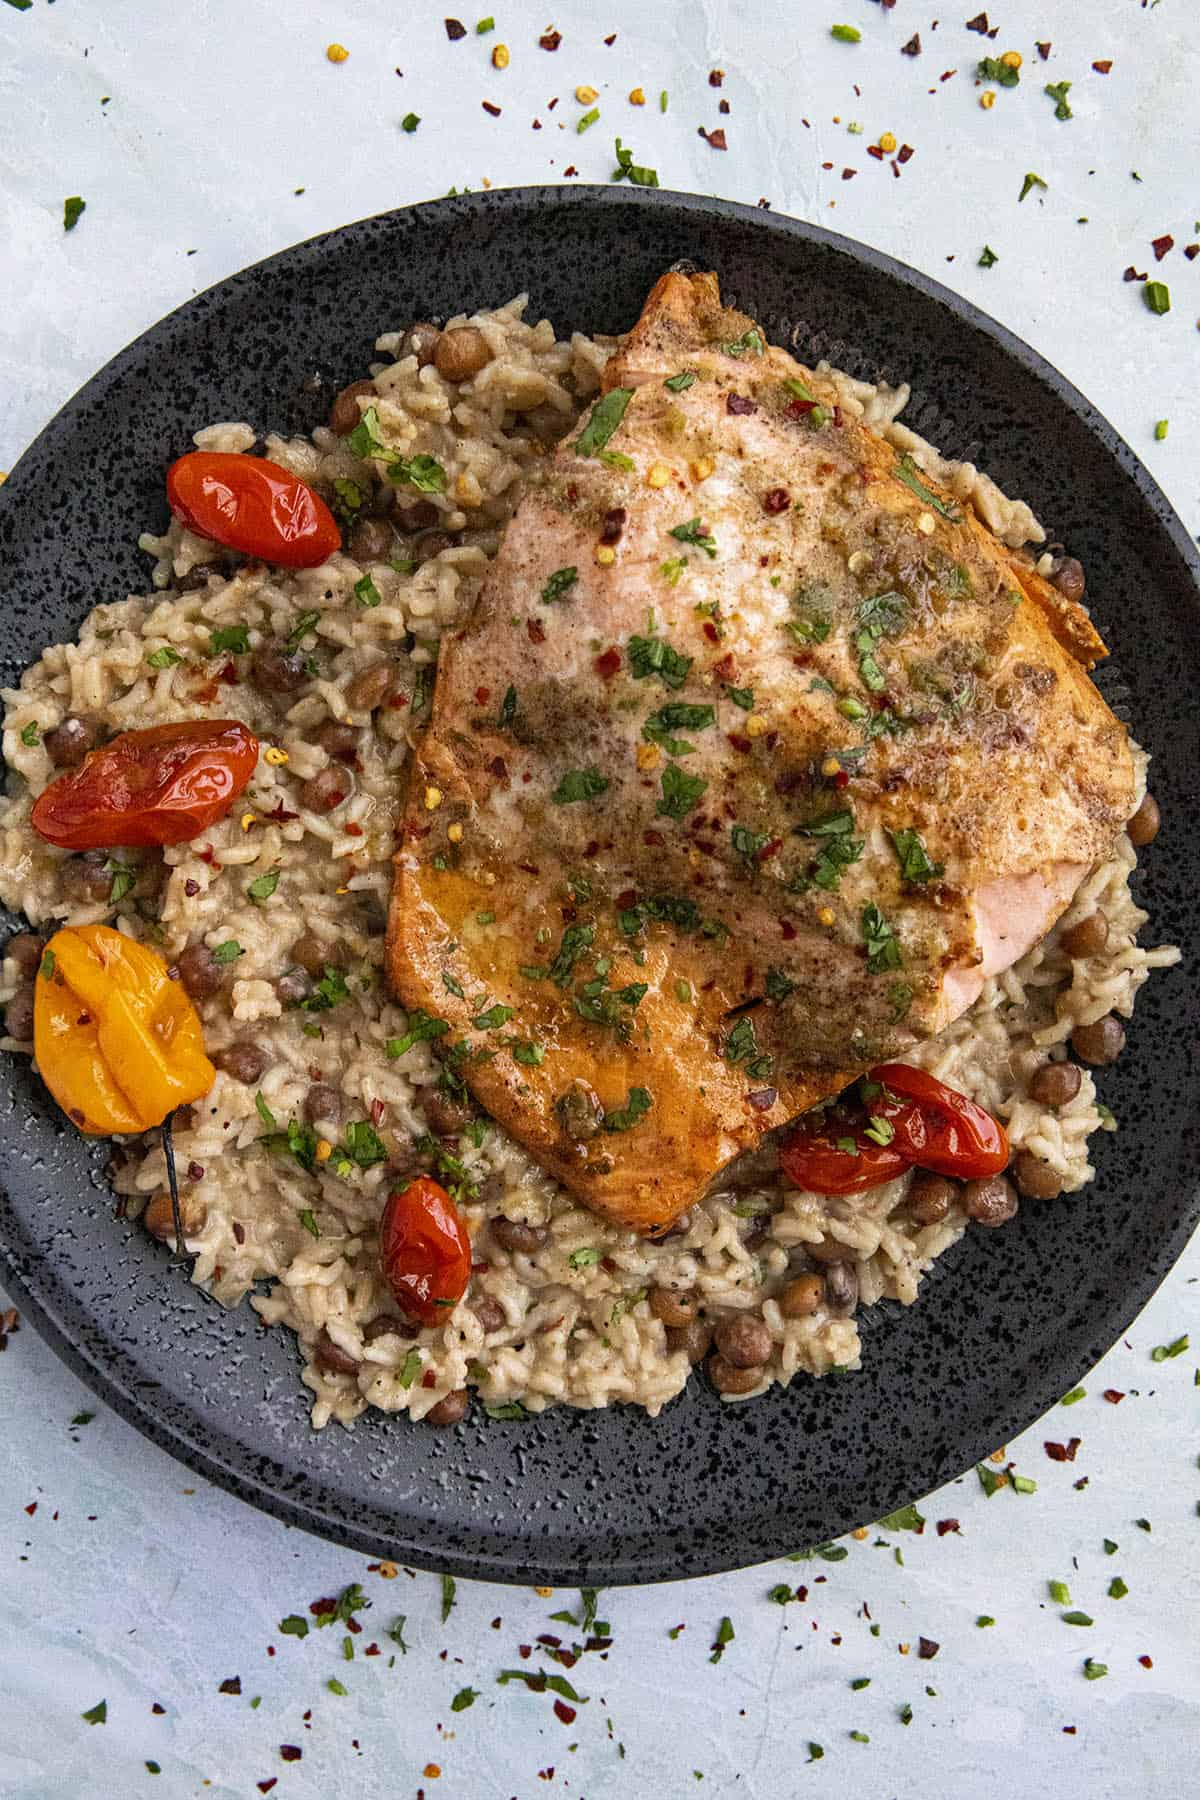 Spicy Jerk Salmon served over Jamaican rice and peas